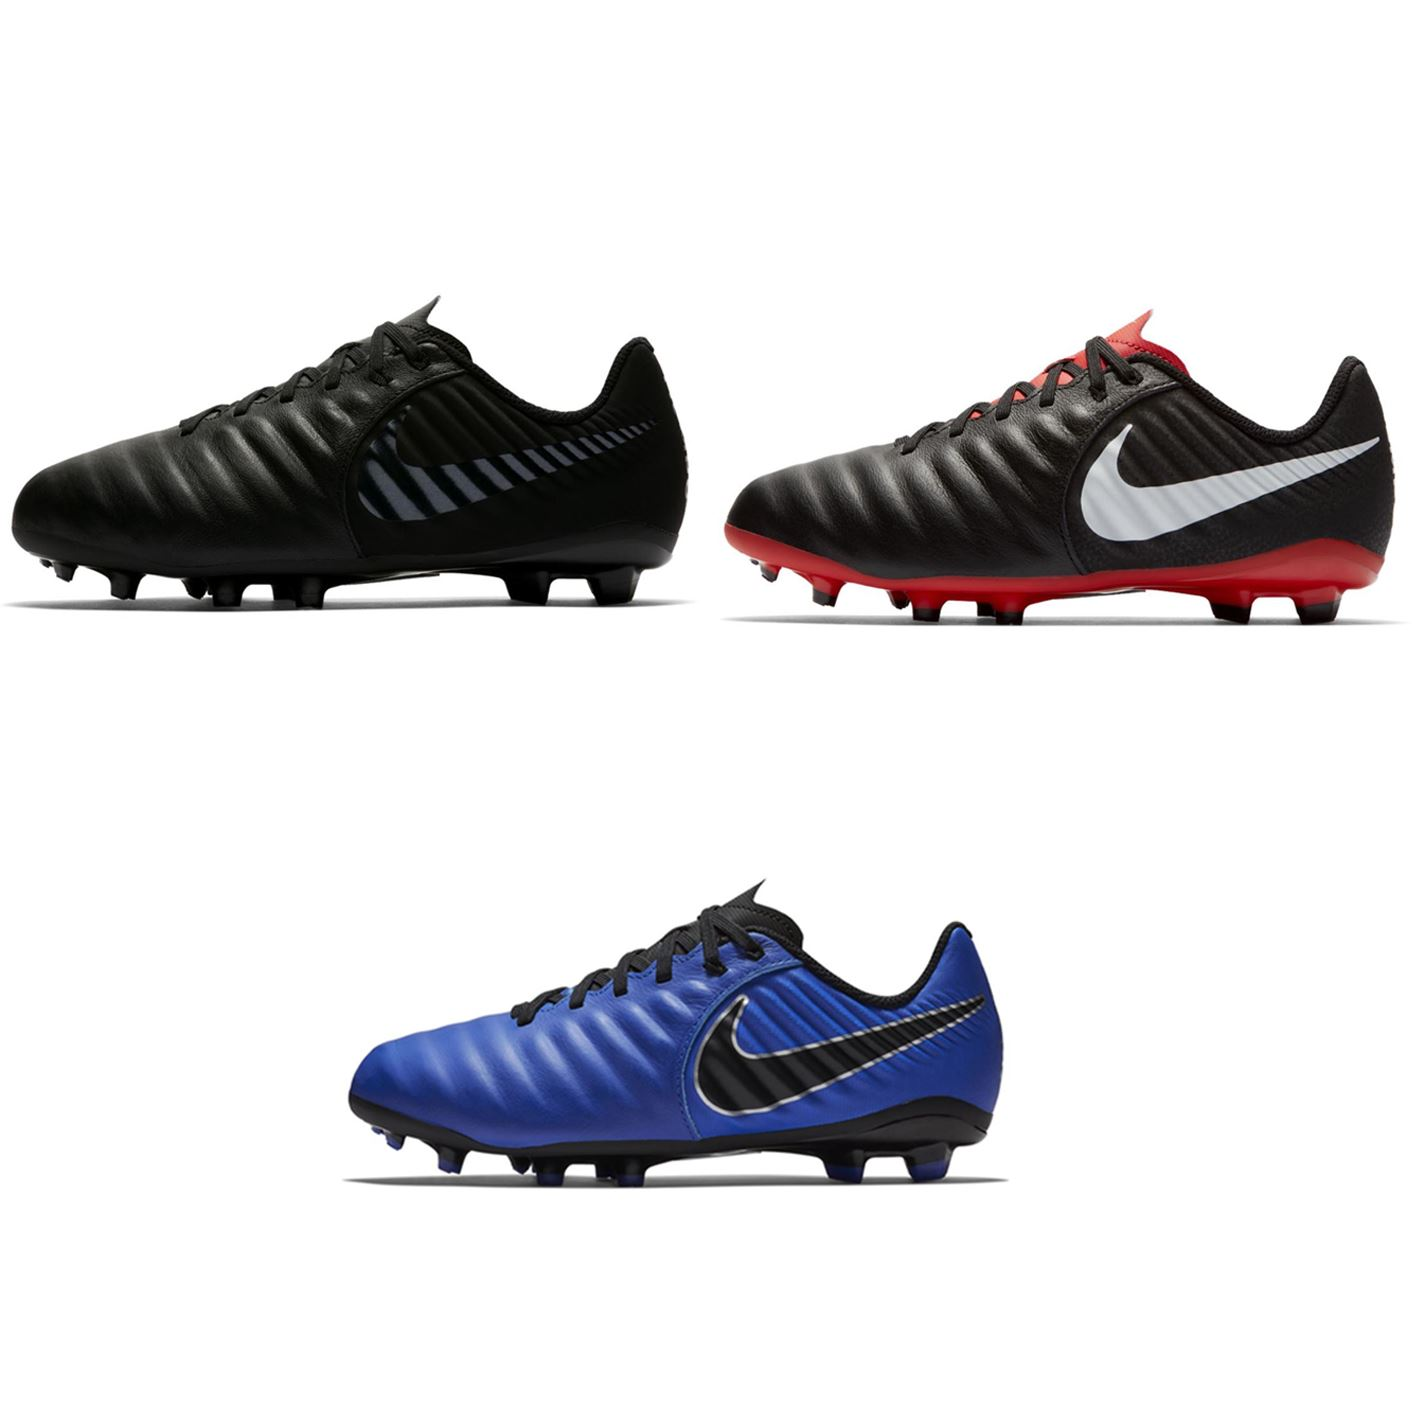 a01f27177760 ... Nike Tiempo Legend Academy FG Firm Ground Football Boots Juniors Soccer  Cleats ...